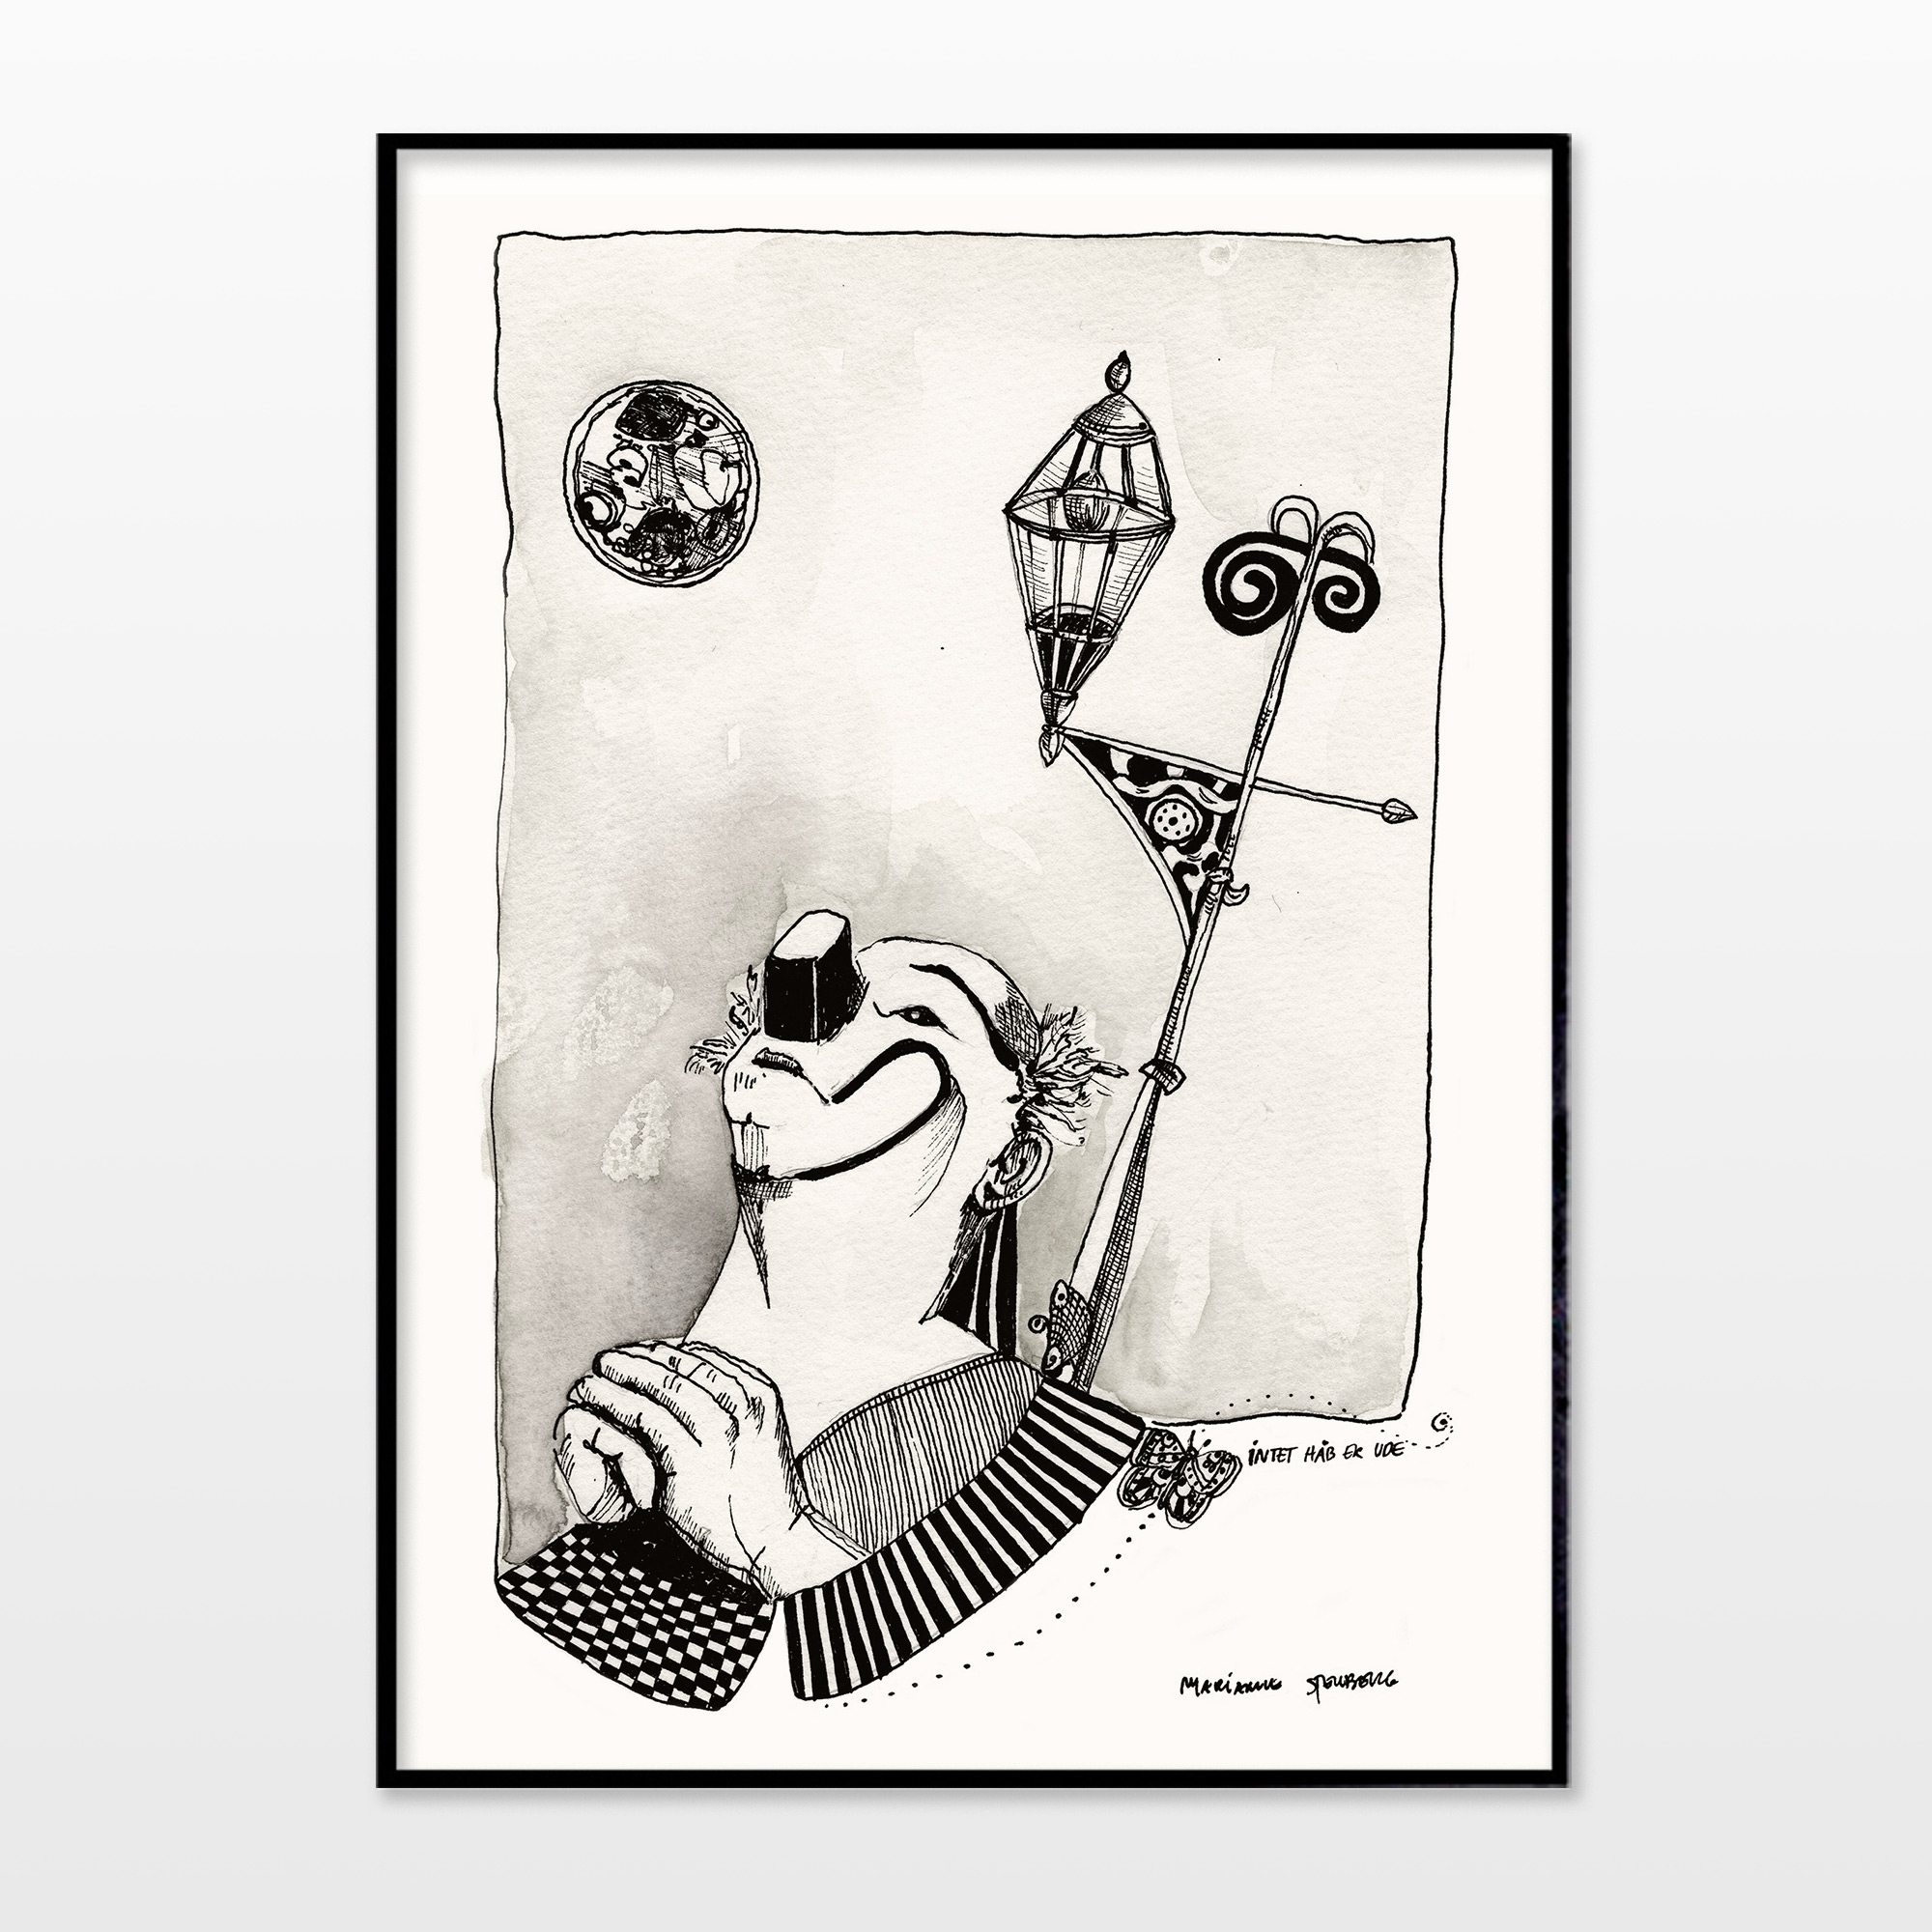 drawings, aesthetic, expressive, figurative, illustrative, monochrome, moods, people, black, grey, white, ink, paper, calligraphy, contemporary-art, danish, decorative, design, interior, interior-design, modern, modern-art, nordic, scandinavien, Buy original high quality art. Paintings, drawings, limited edition prints & posters by talented artists.